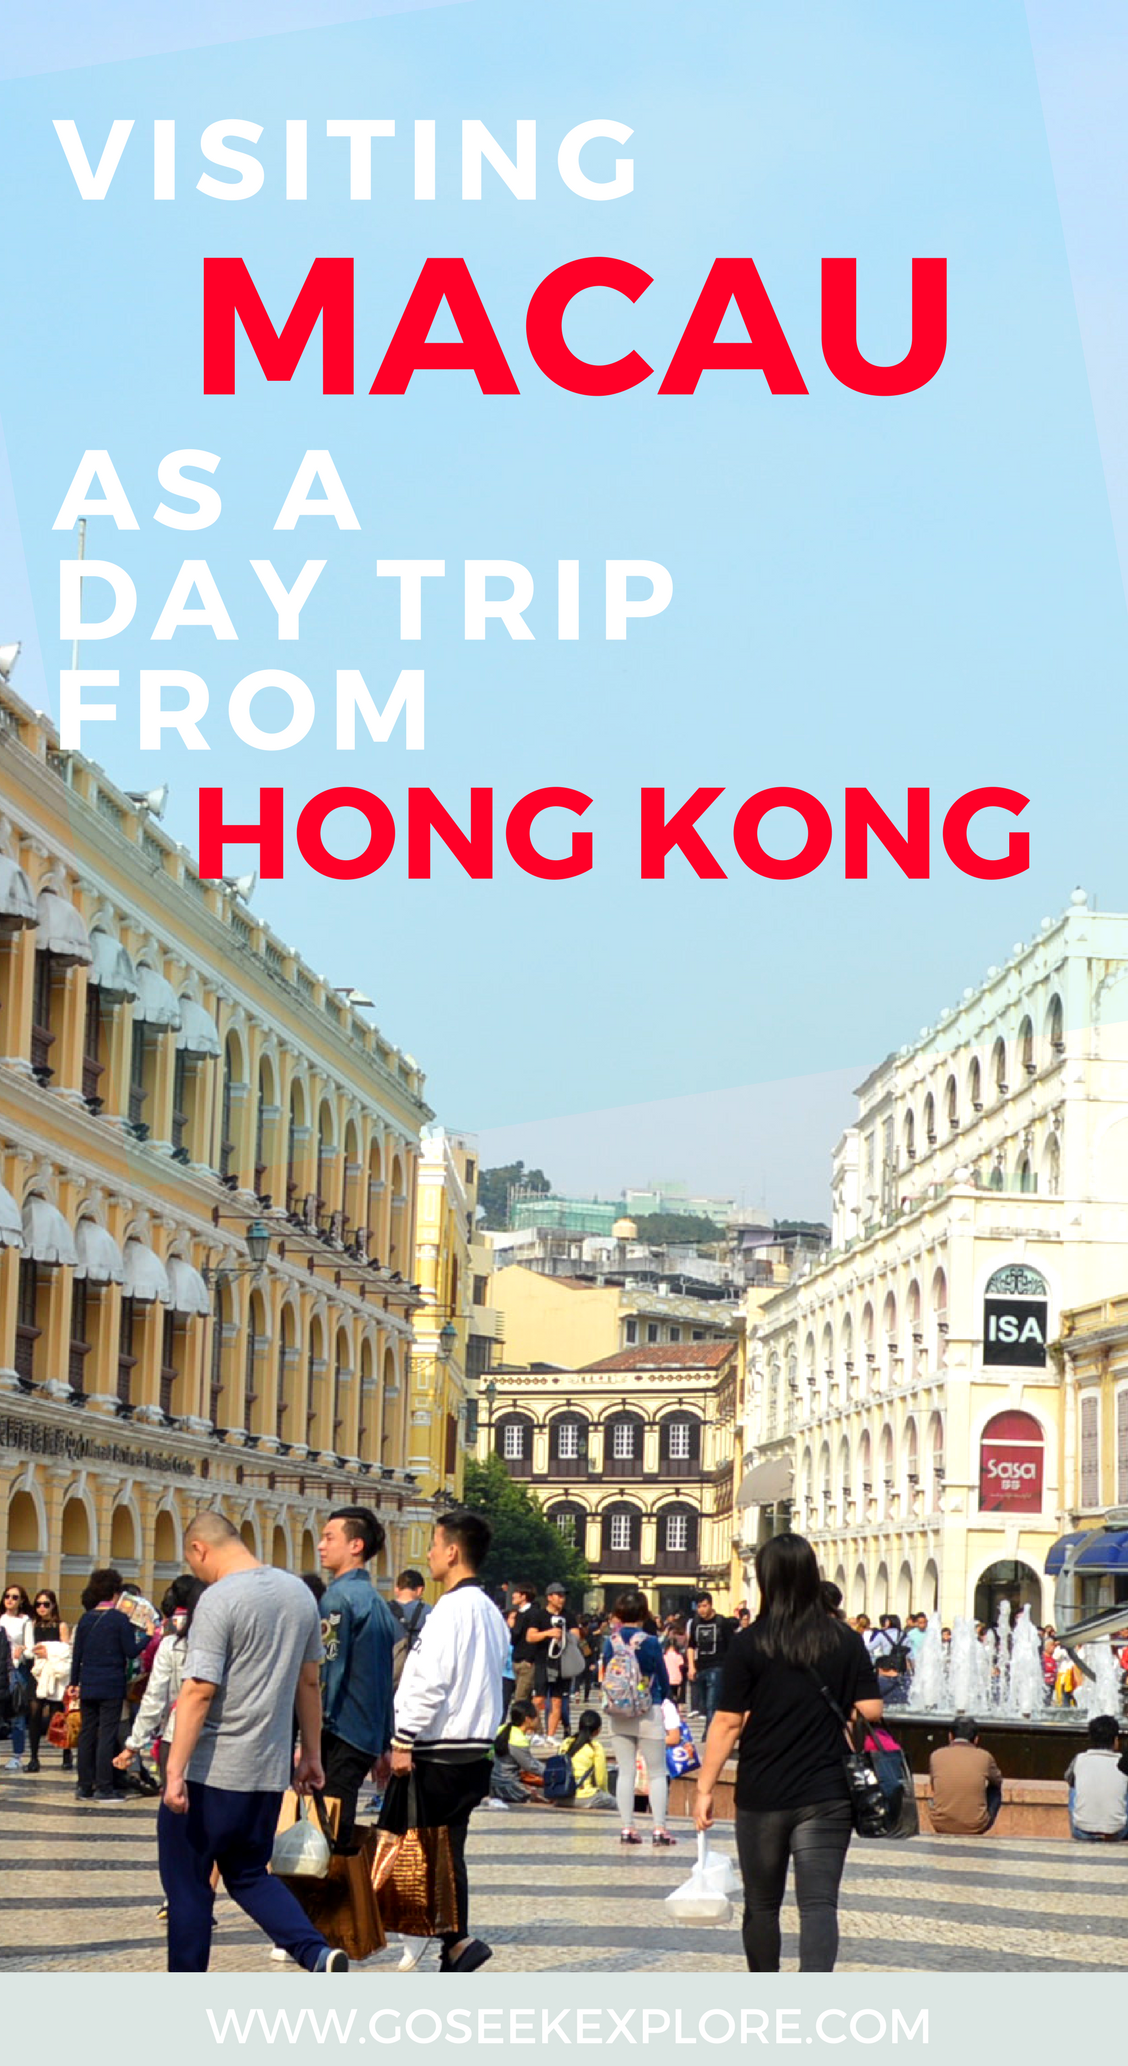 Day trip from Hong Kong to Macau!! What it's like to visit MACAU,  a former Portuguese area in Asia, just a 60 minute ferry ride from Hong Kong!